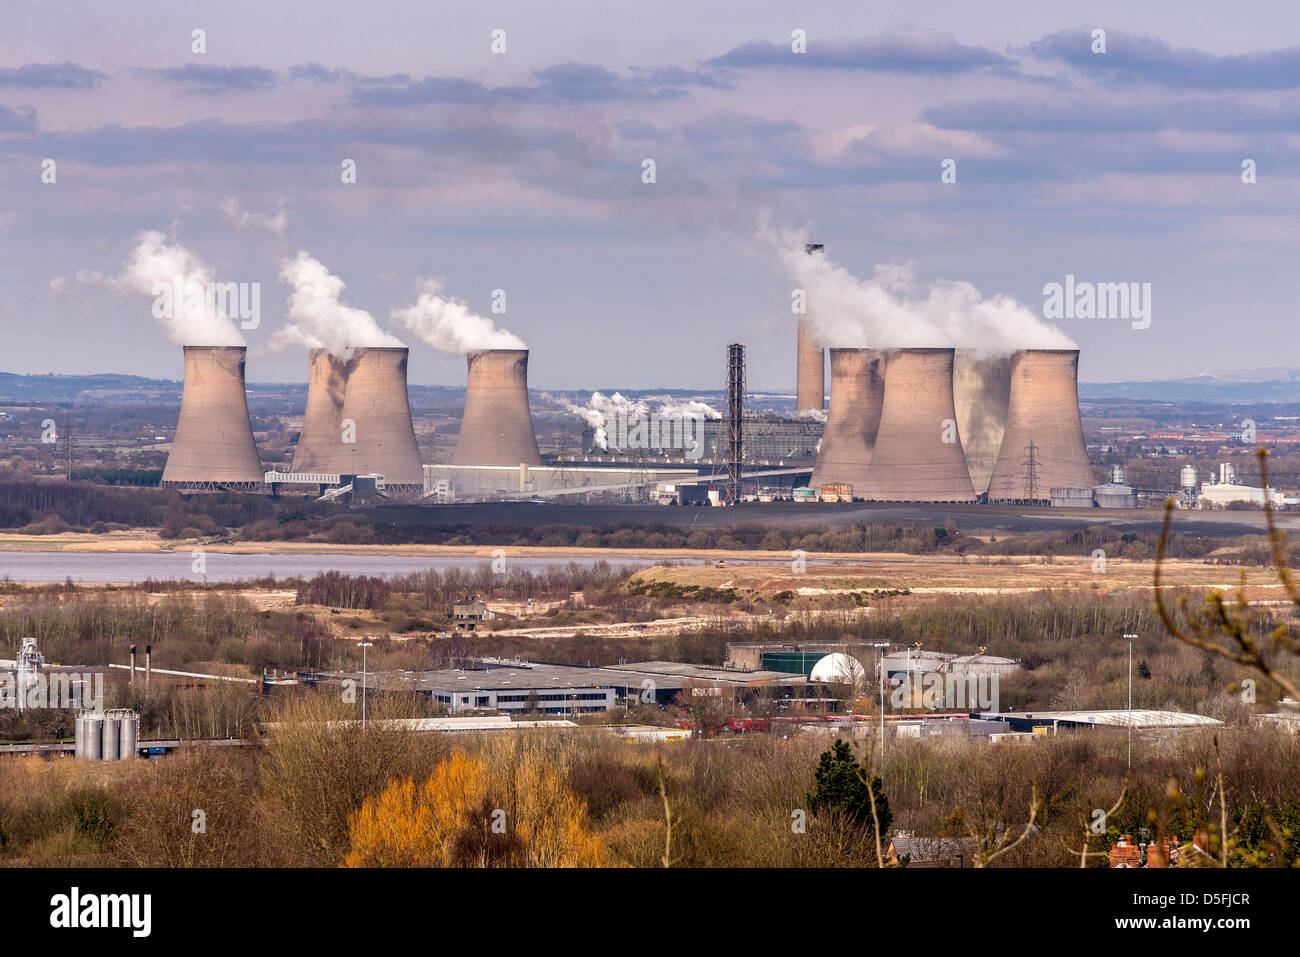 Fiddlers Ferry power station cooling towers at Cuerdley near Widnes seen from the south west. Stock Photo